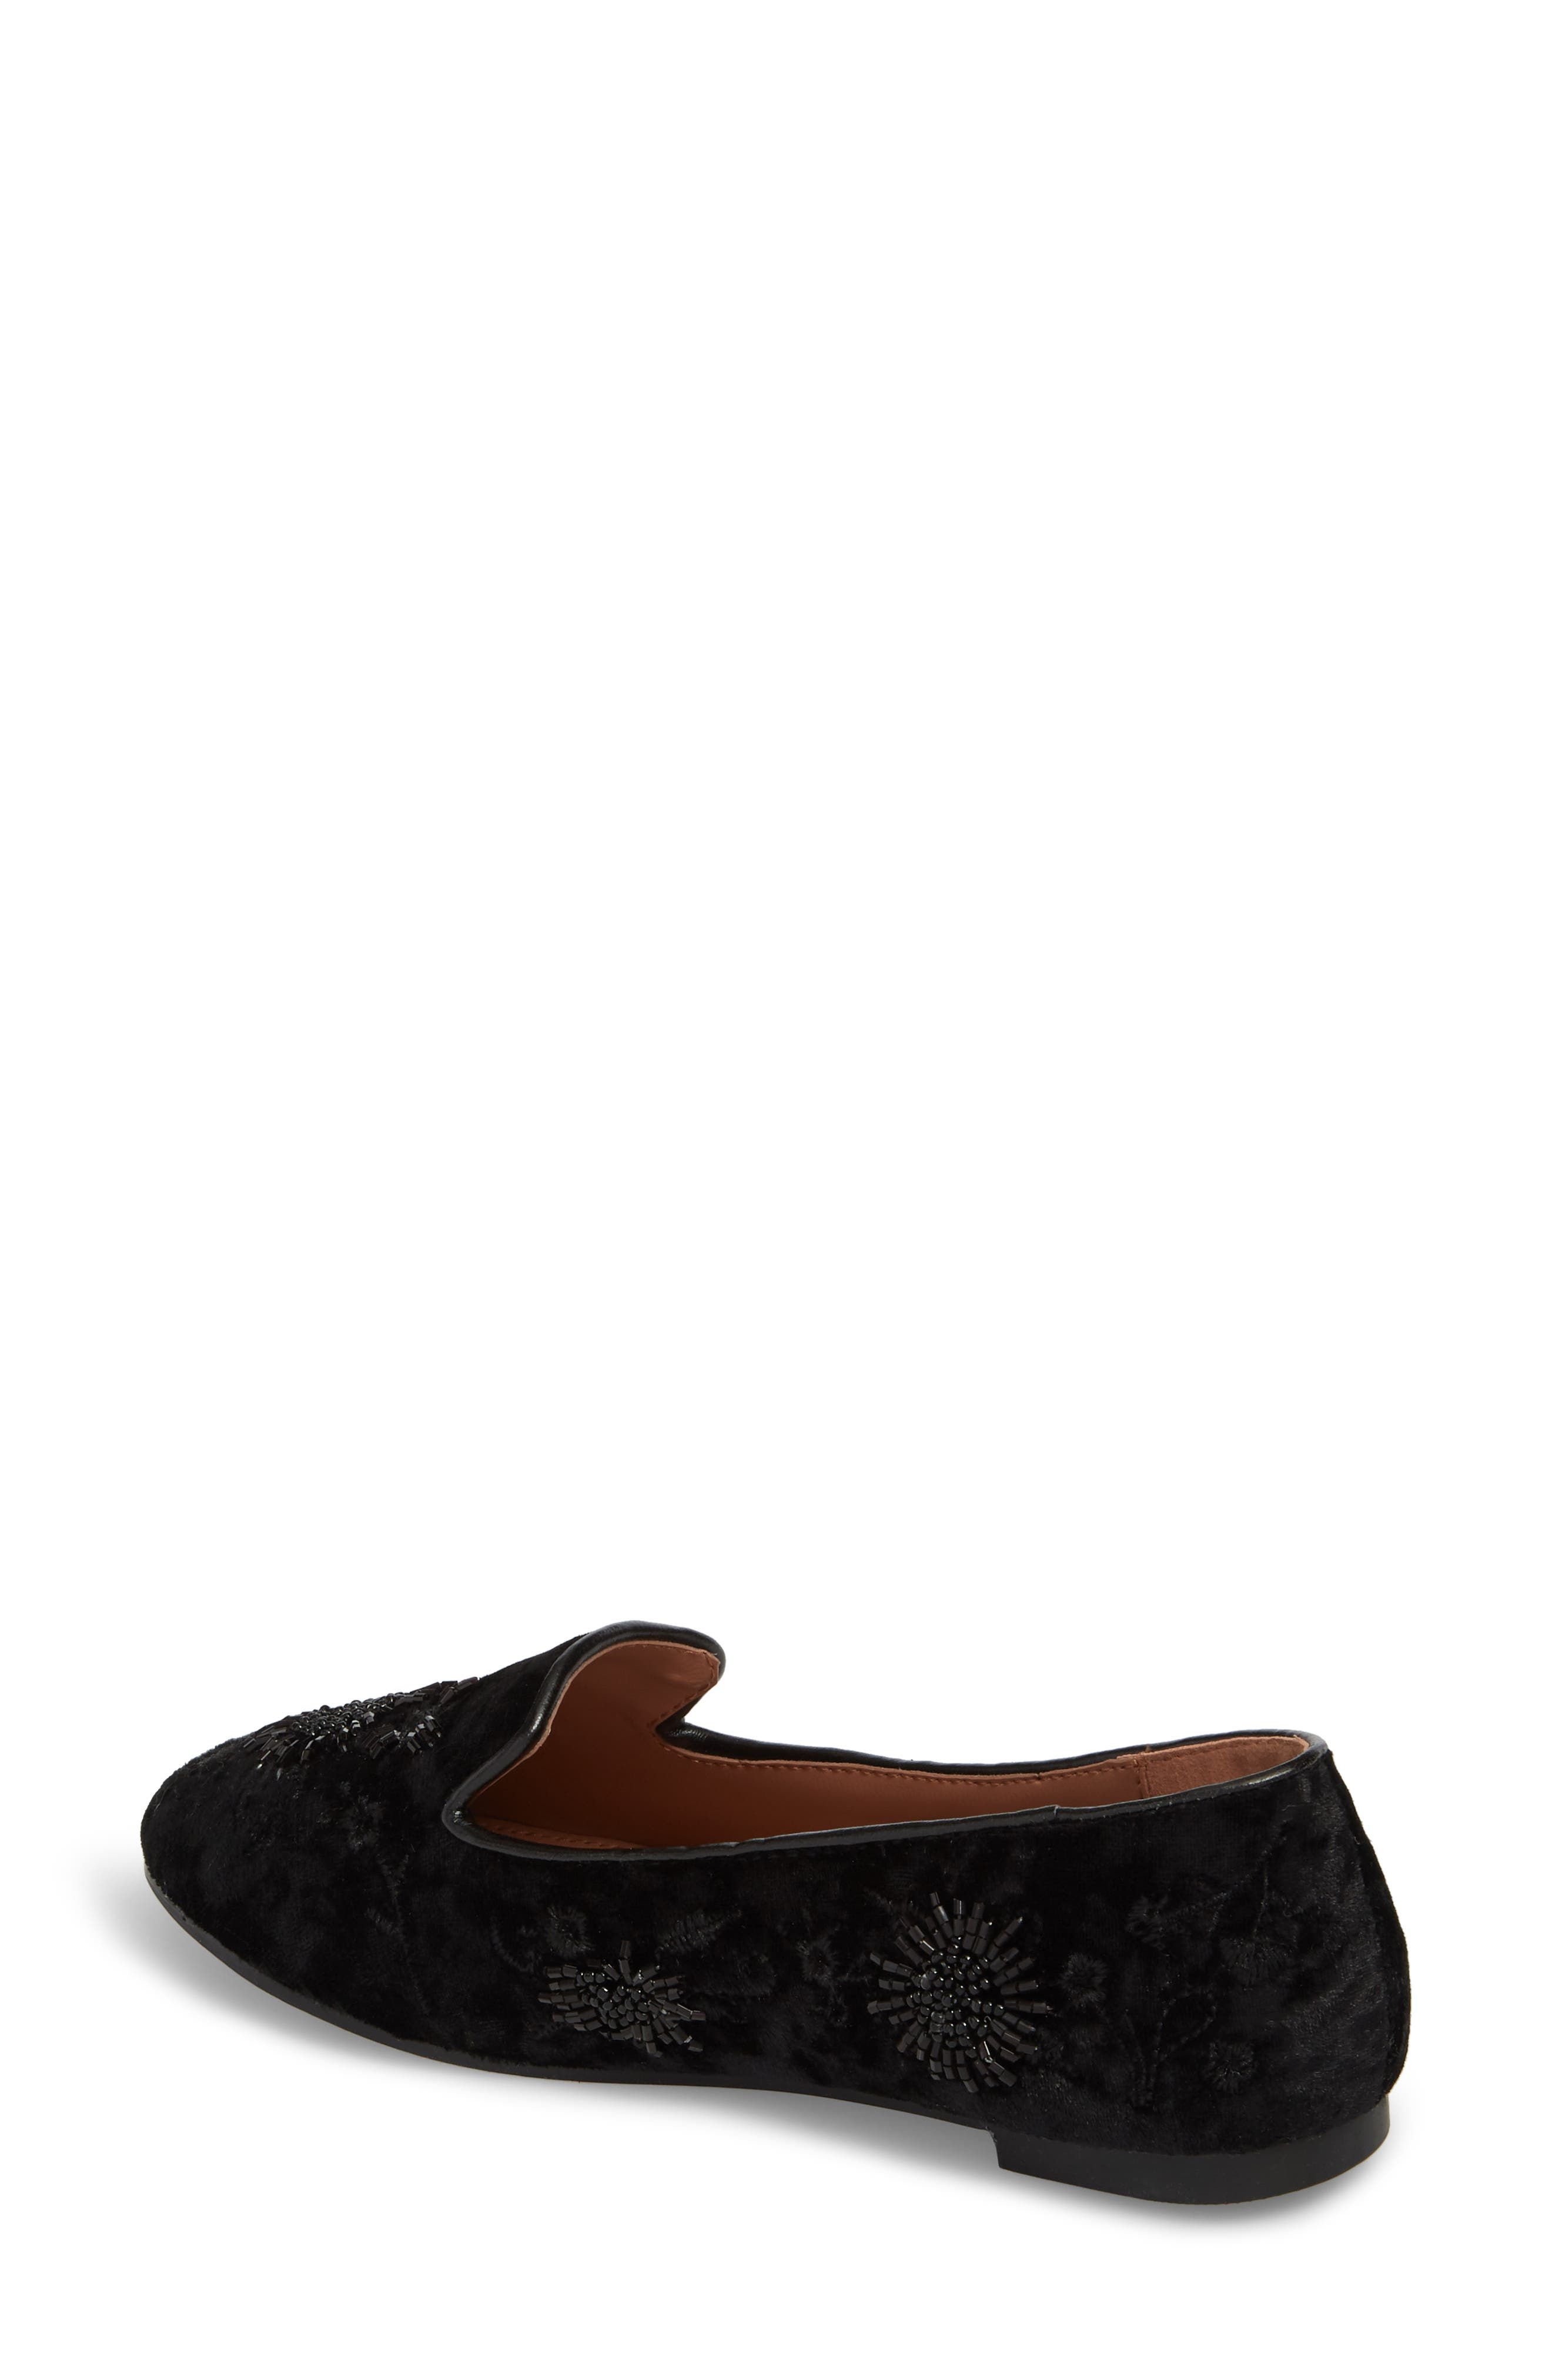 Syrup Embellished Loafer,                             Alternate thumbnail 2, color,                             Black